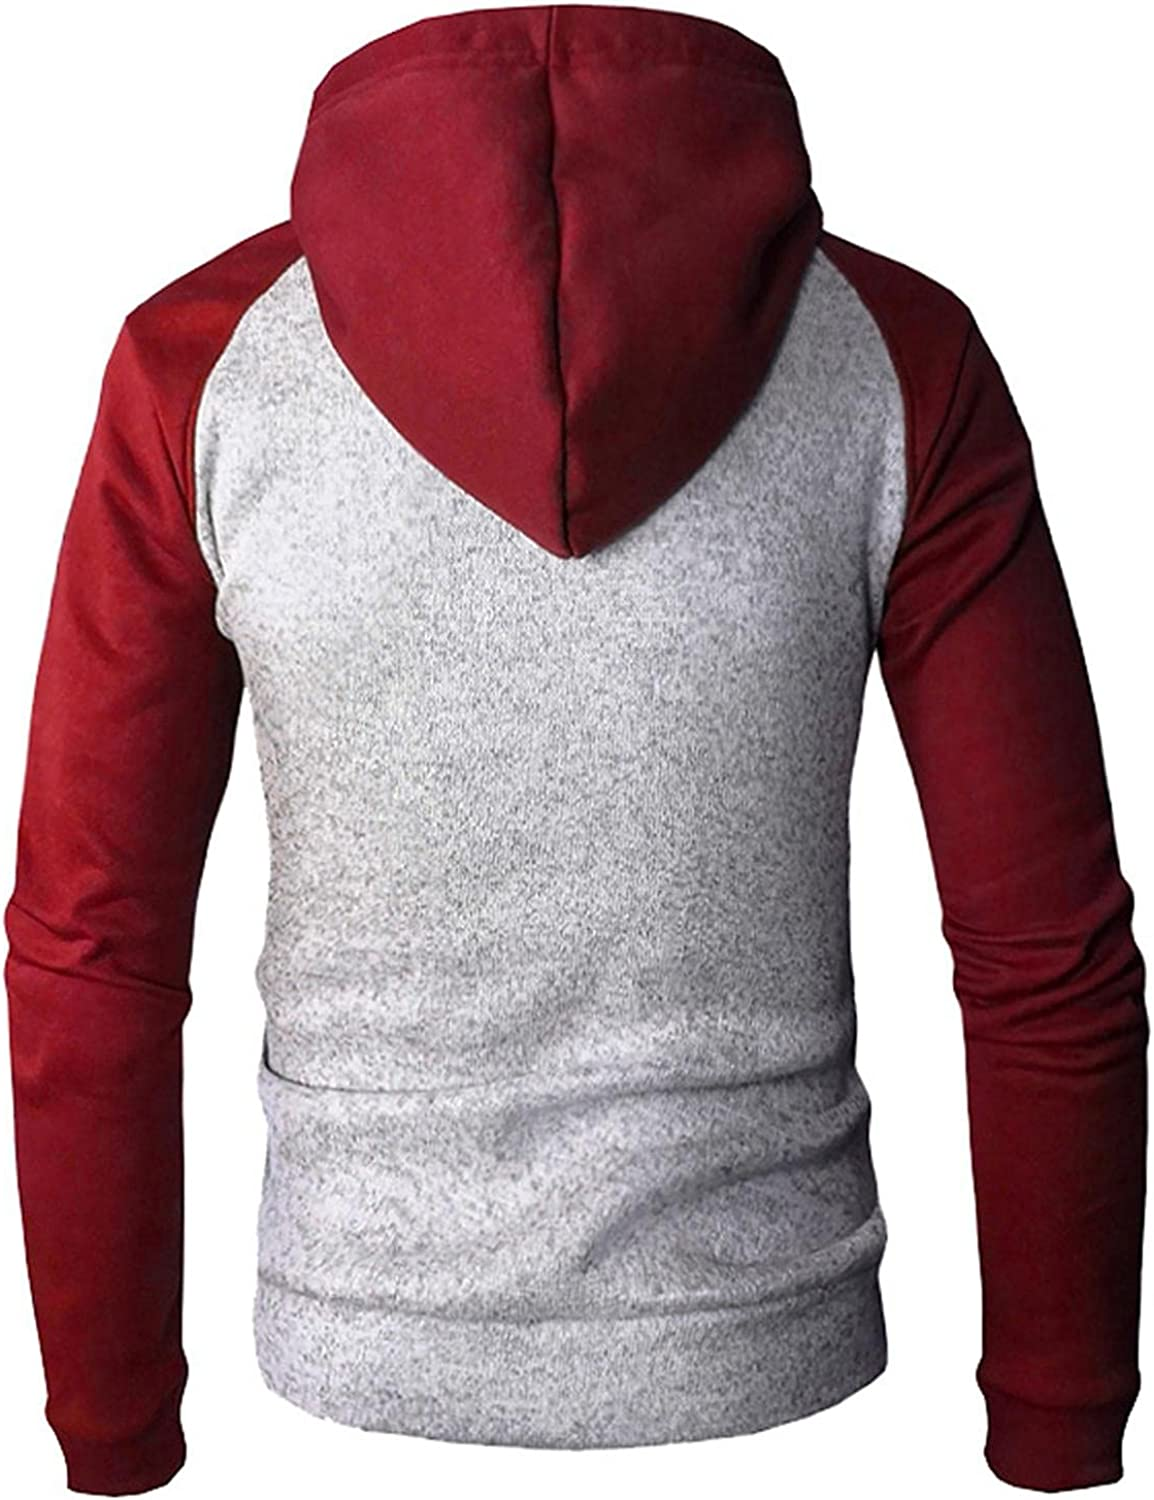 Hoodies for Men, F_Gotal Men's Fashion Long Sleeve Autumn Solid Color Pocket Loose Casual Sweatshirt Hoodies Tracksuits